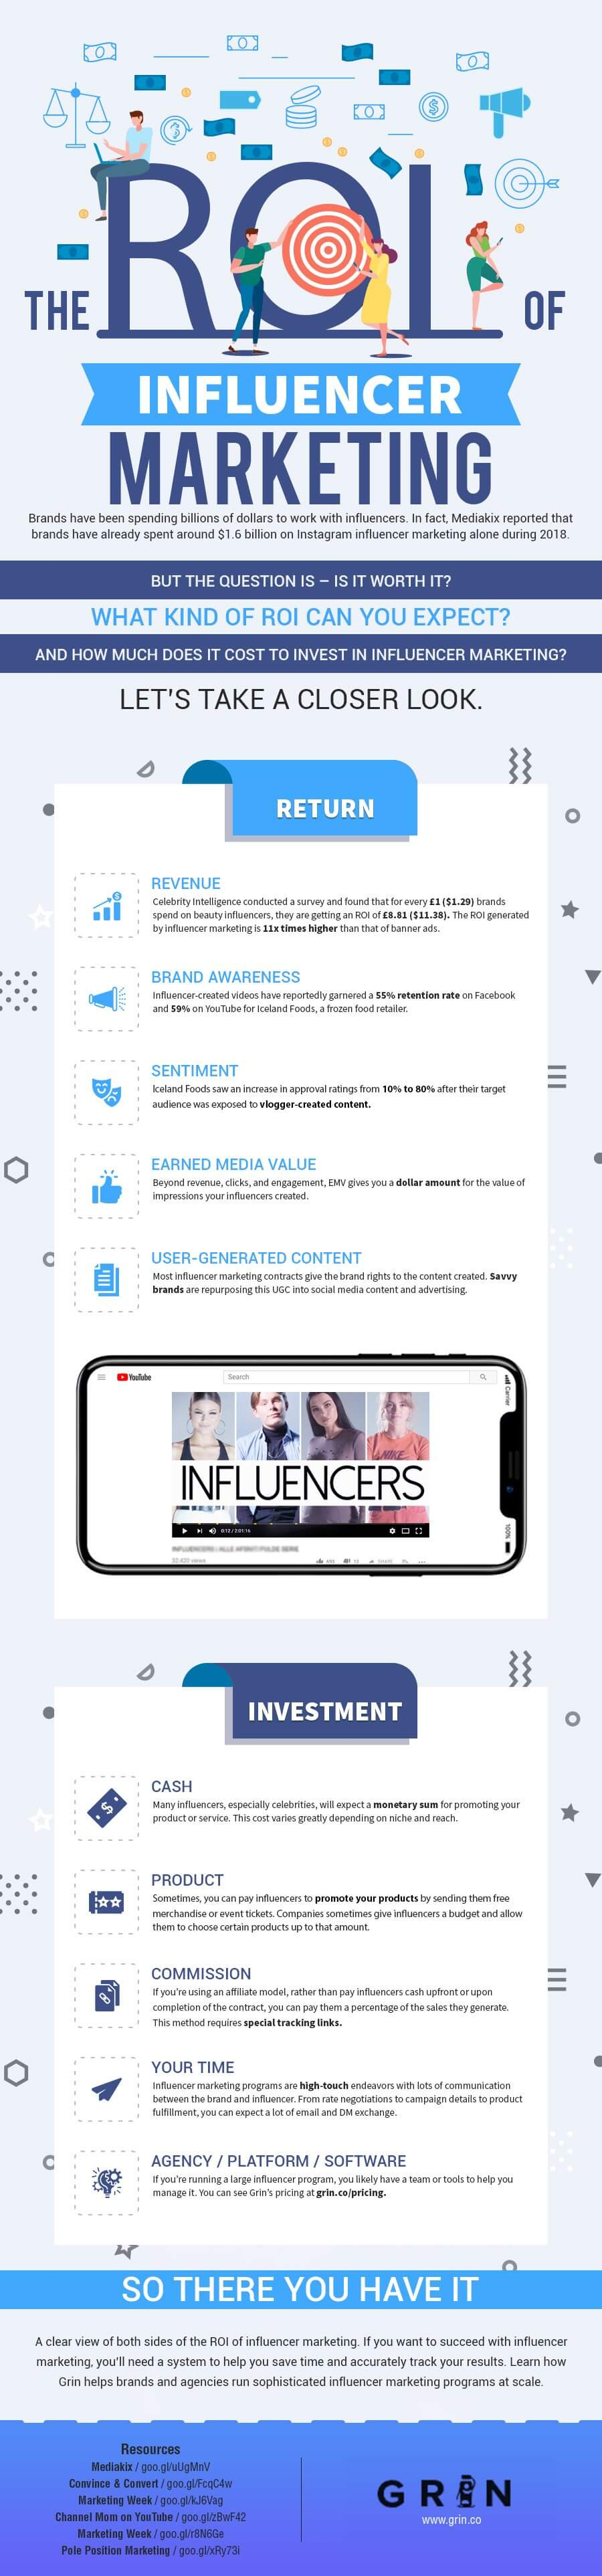 The20ROI20of20Influencer20Marketing20Infographic-3